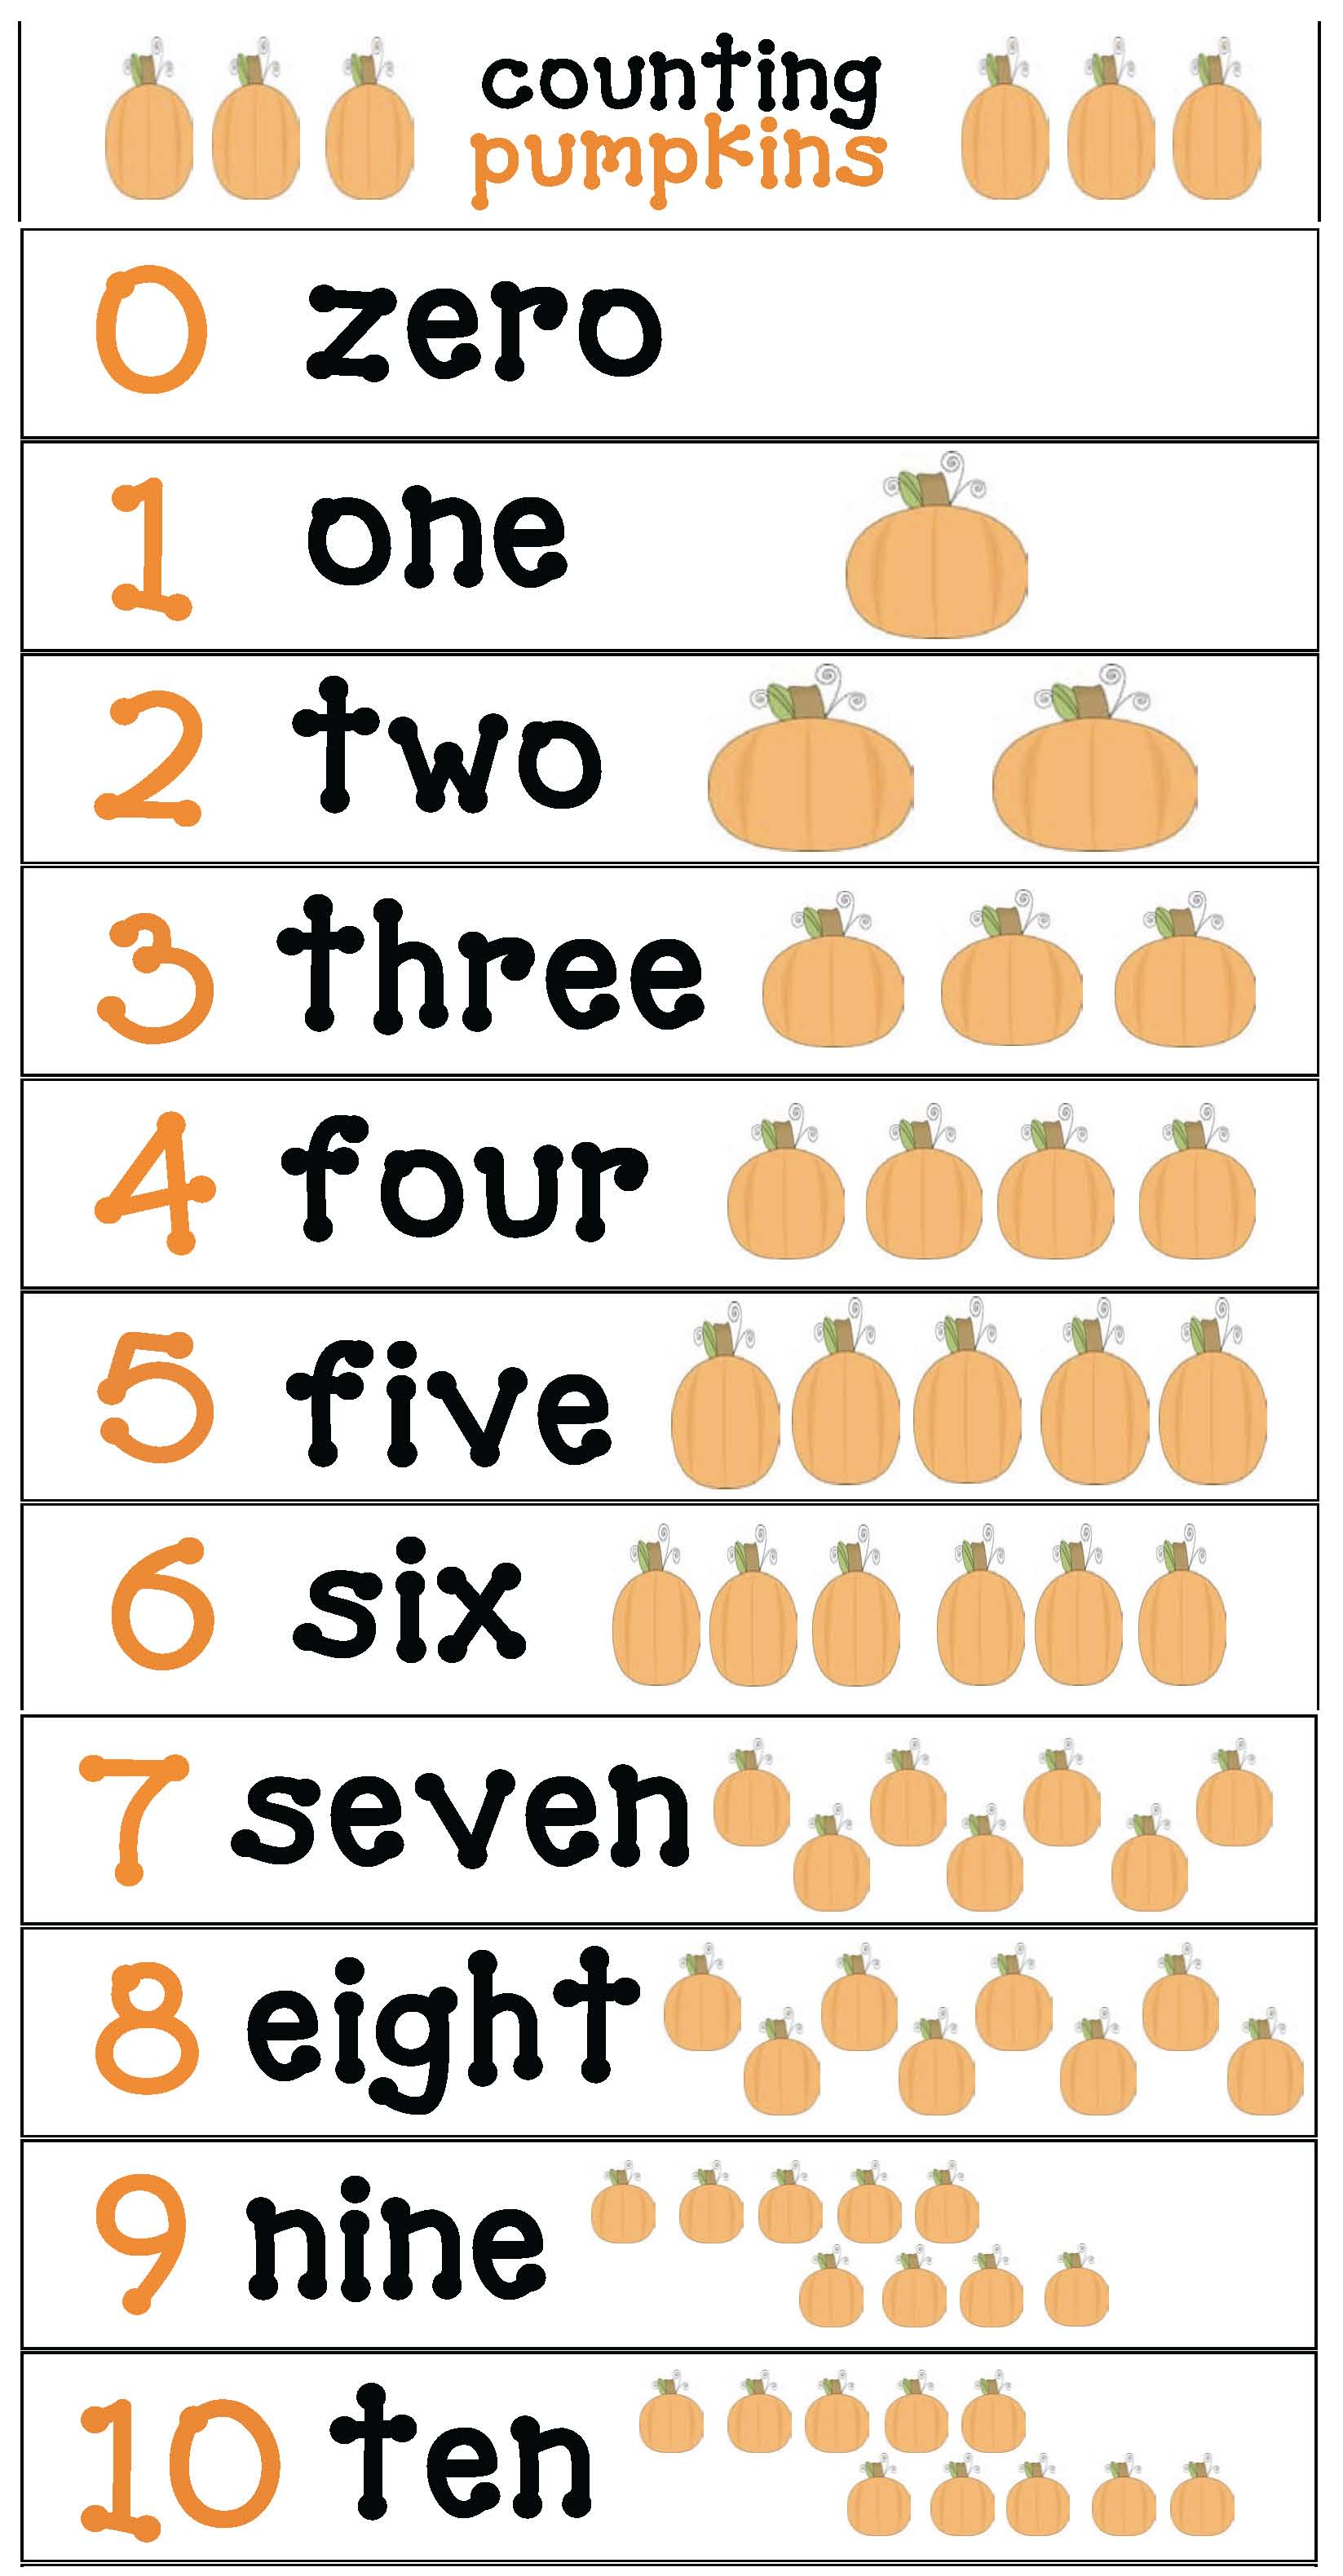 pumpkin activities, pumpkin games, pumpkin math, pumpkin seed activities, common core pumpkins, pumpkin games, pumpkin centers, number word activities, 10 frames, pumpkin 10 frames, pumpkin number cards, common core pumpkins